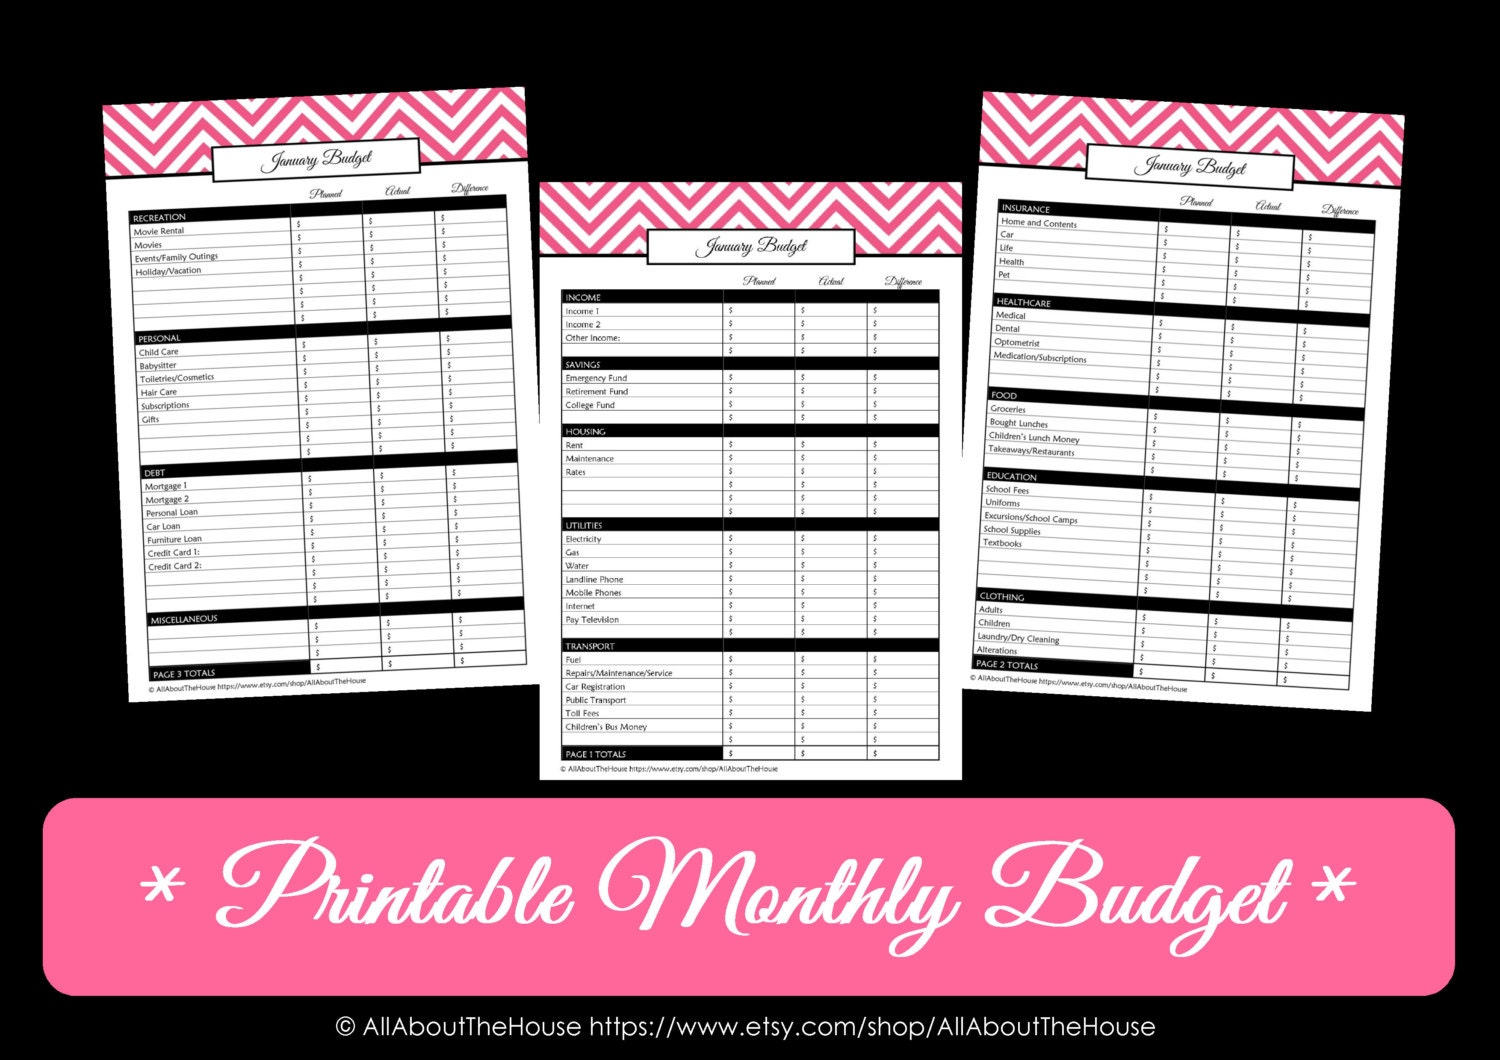 Printable Monthly Budget Template Printable monthly budget